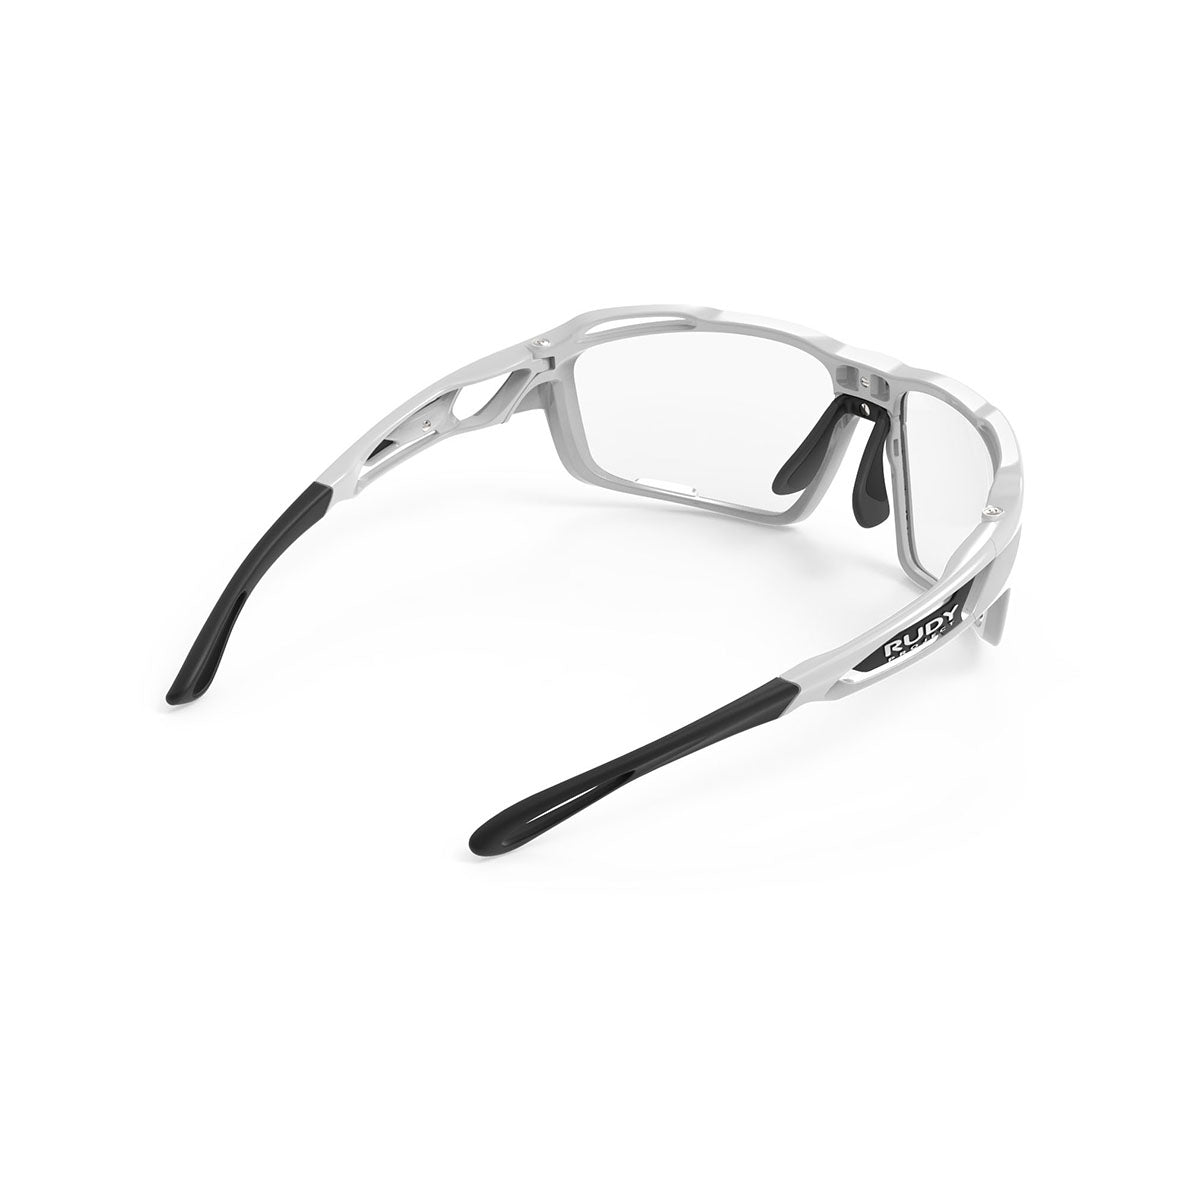 Rudy Project - Sintryx - frame color: White Gloss - lens color: ImpactX-2 Photochromic Clear to Black - Bumper Color:  - photo angle: Top Back Angle Variant Hover Image